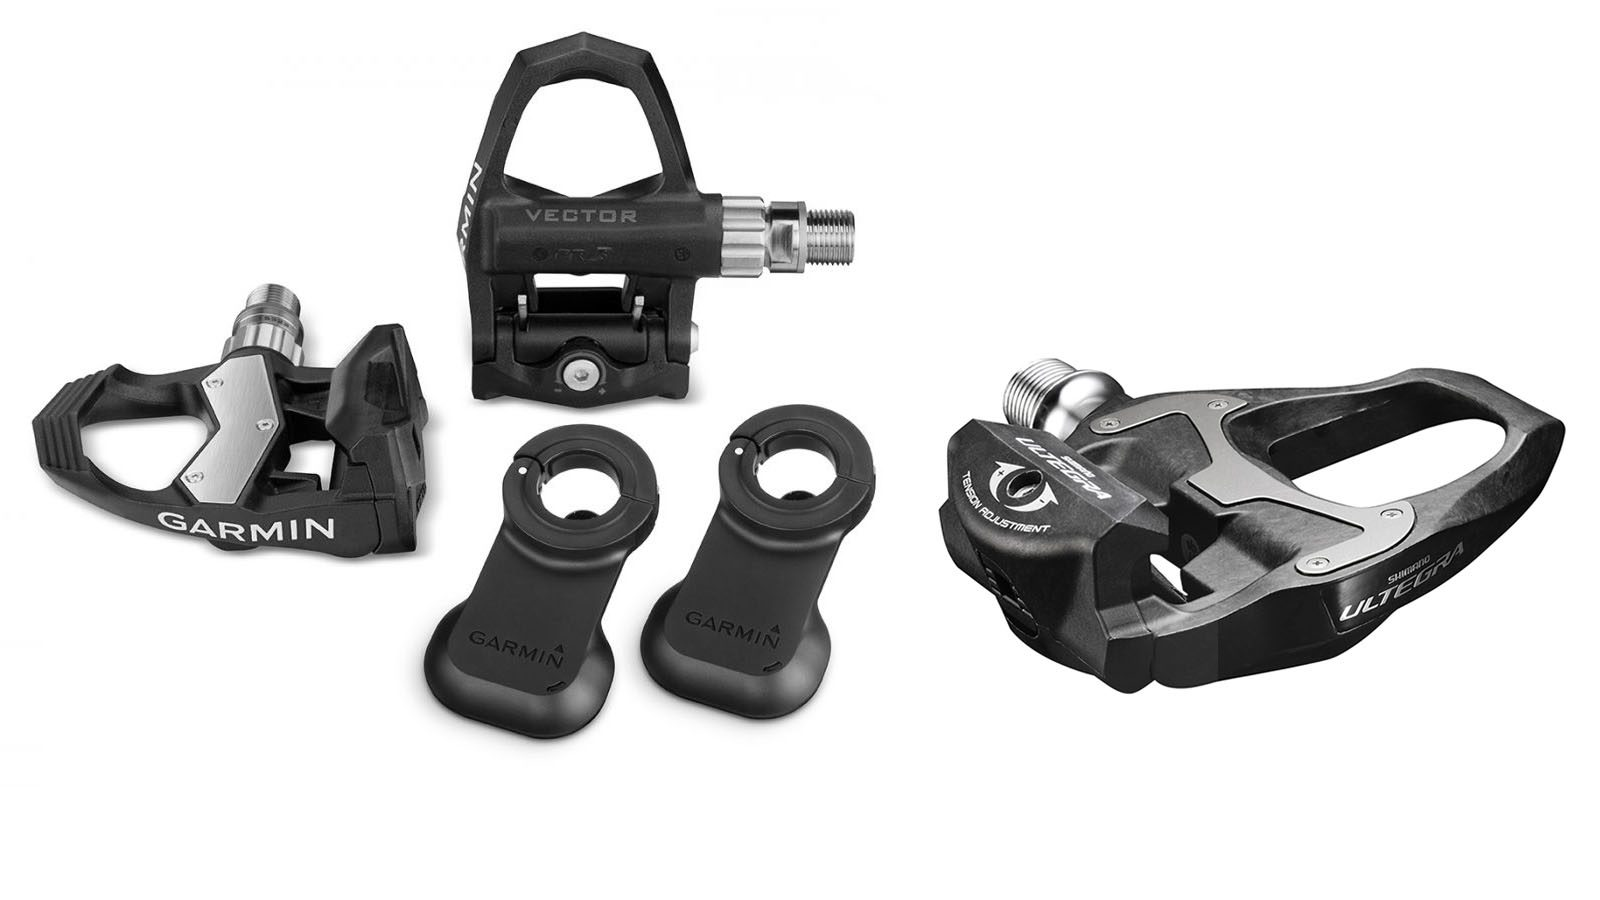 Garmin Vector Cartridge Kit for Shimano Ultegra PD-6800 Pedals